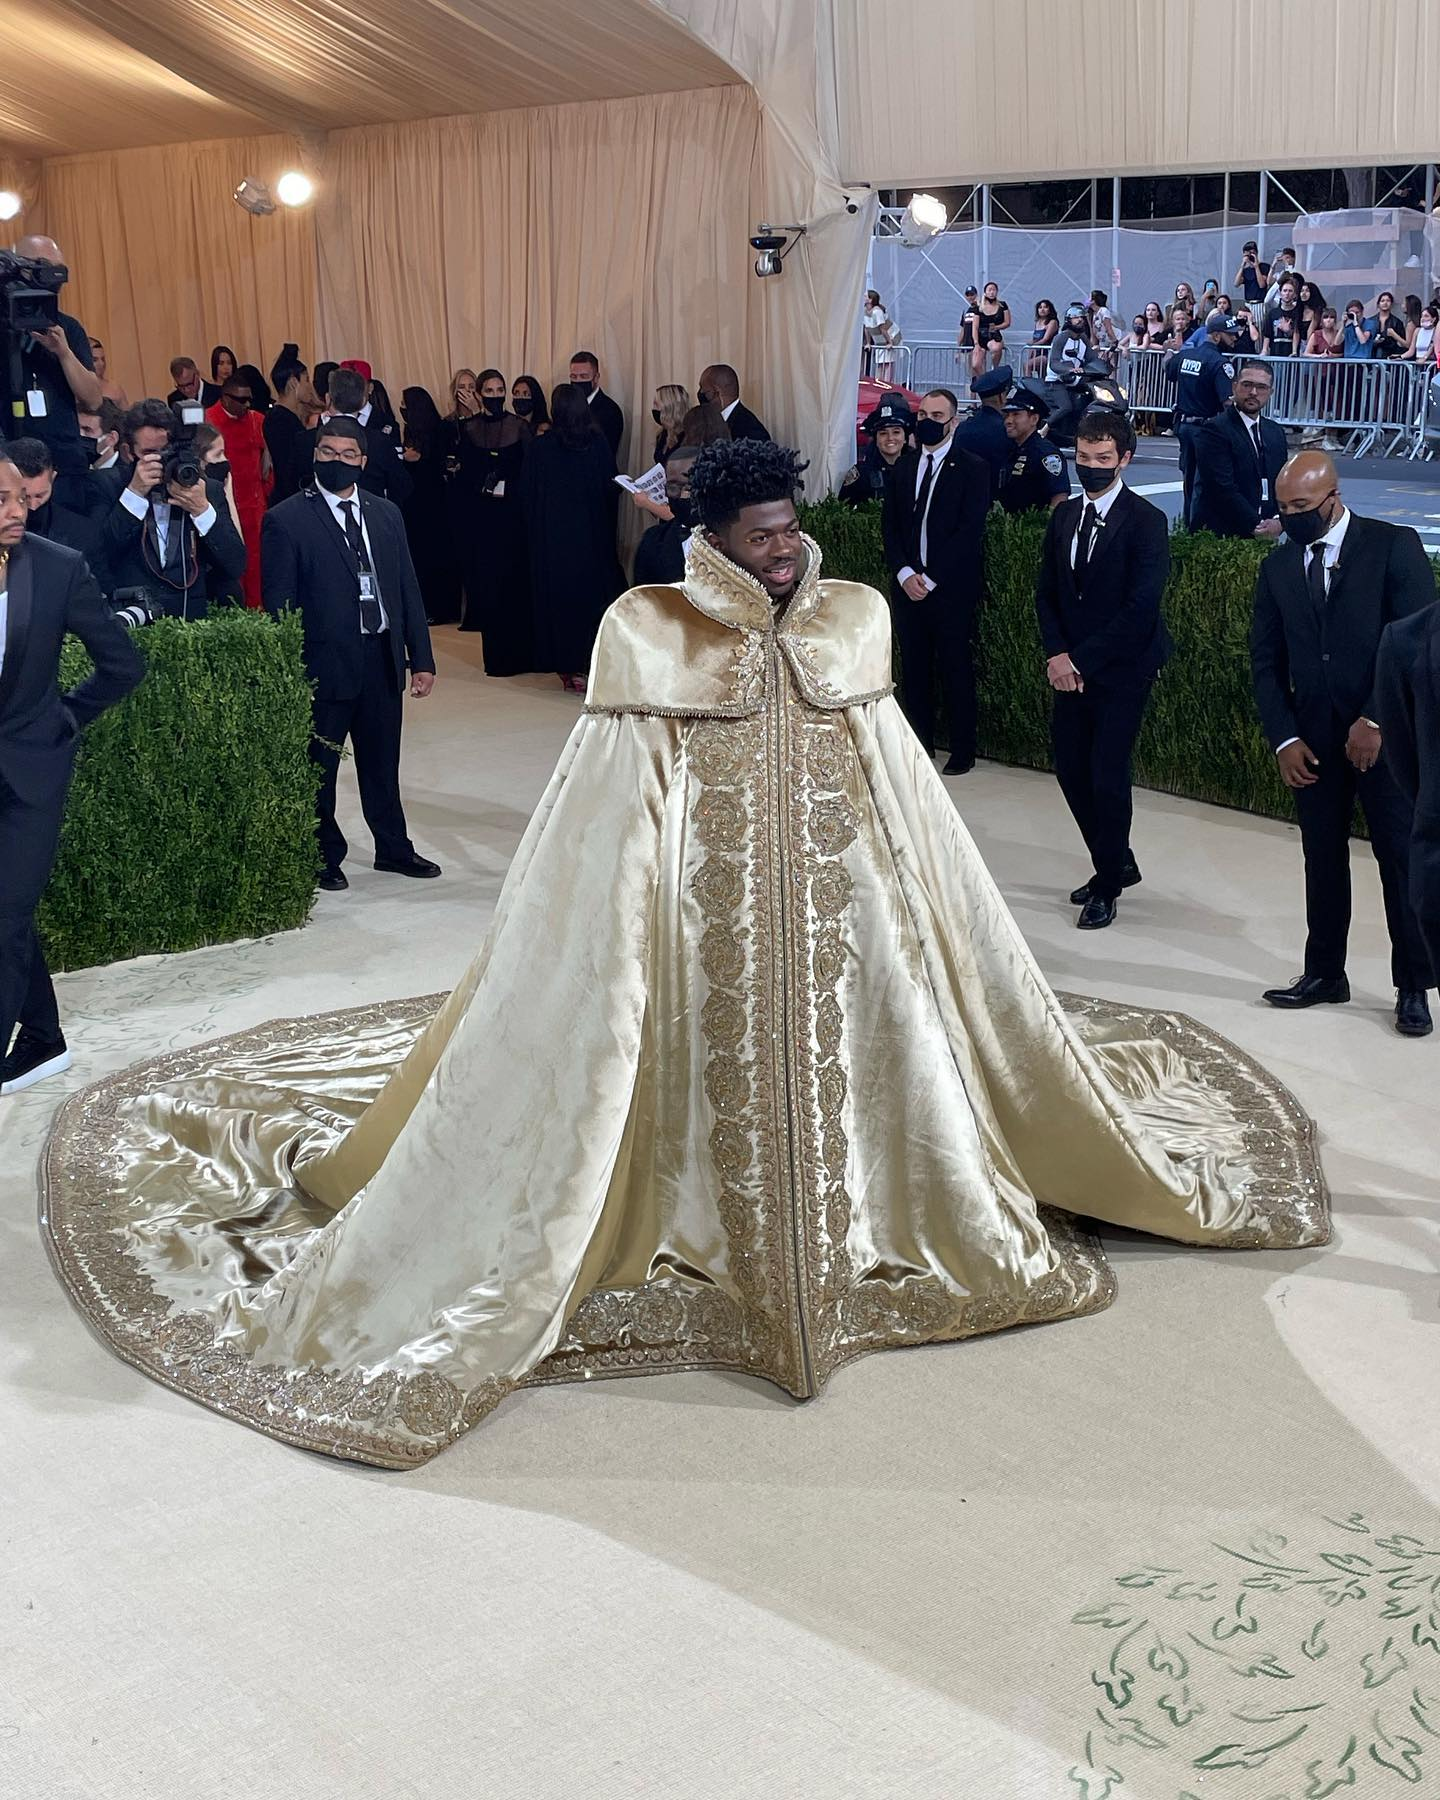 American rapper Lil Nas X stands on The Met's red carpet. He is a dark-skin-toned young man wearing a long, elaborate gold cape, like a royal mantle, with embroidery along its edges and prominent shoulders. Security guards stand in the background.